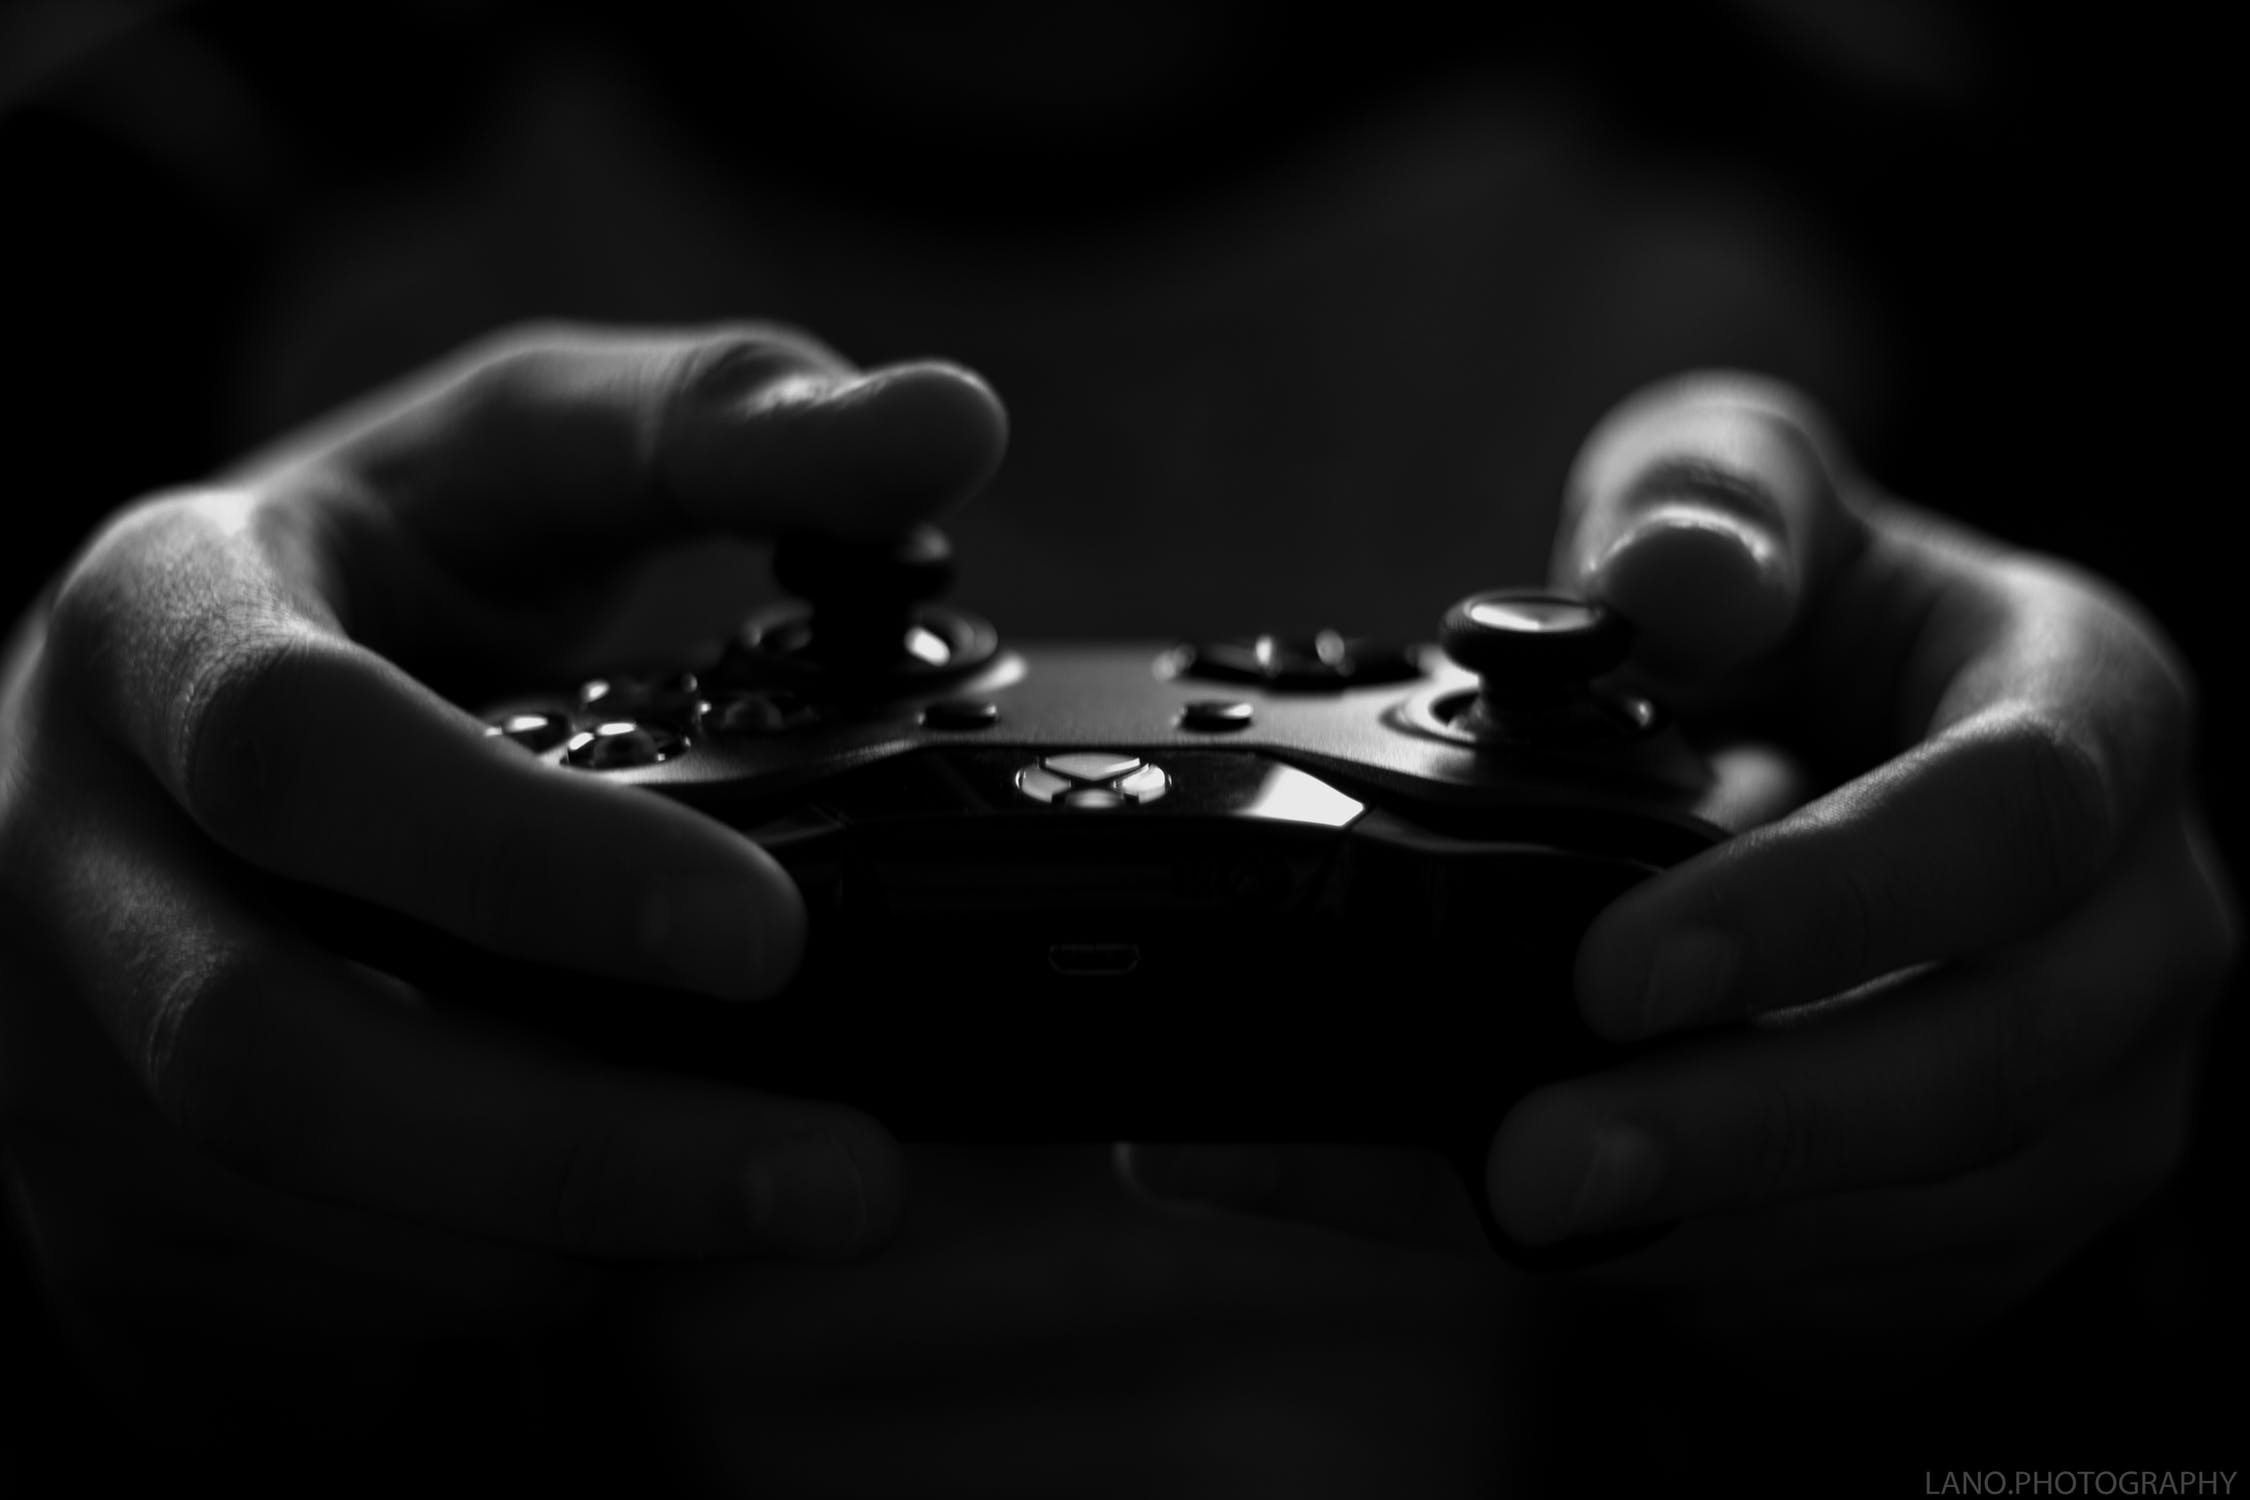 Time to take responsibility over gaming disorder | Opinion